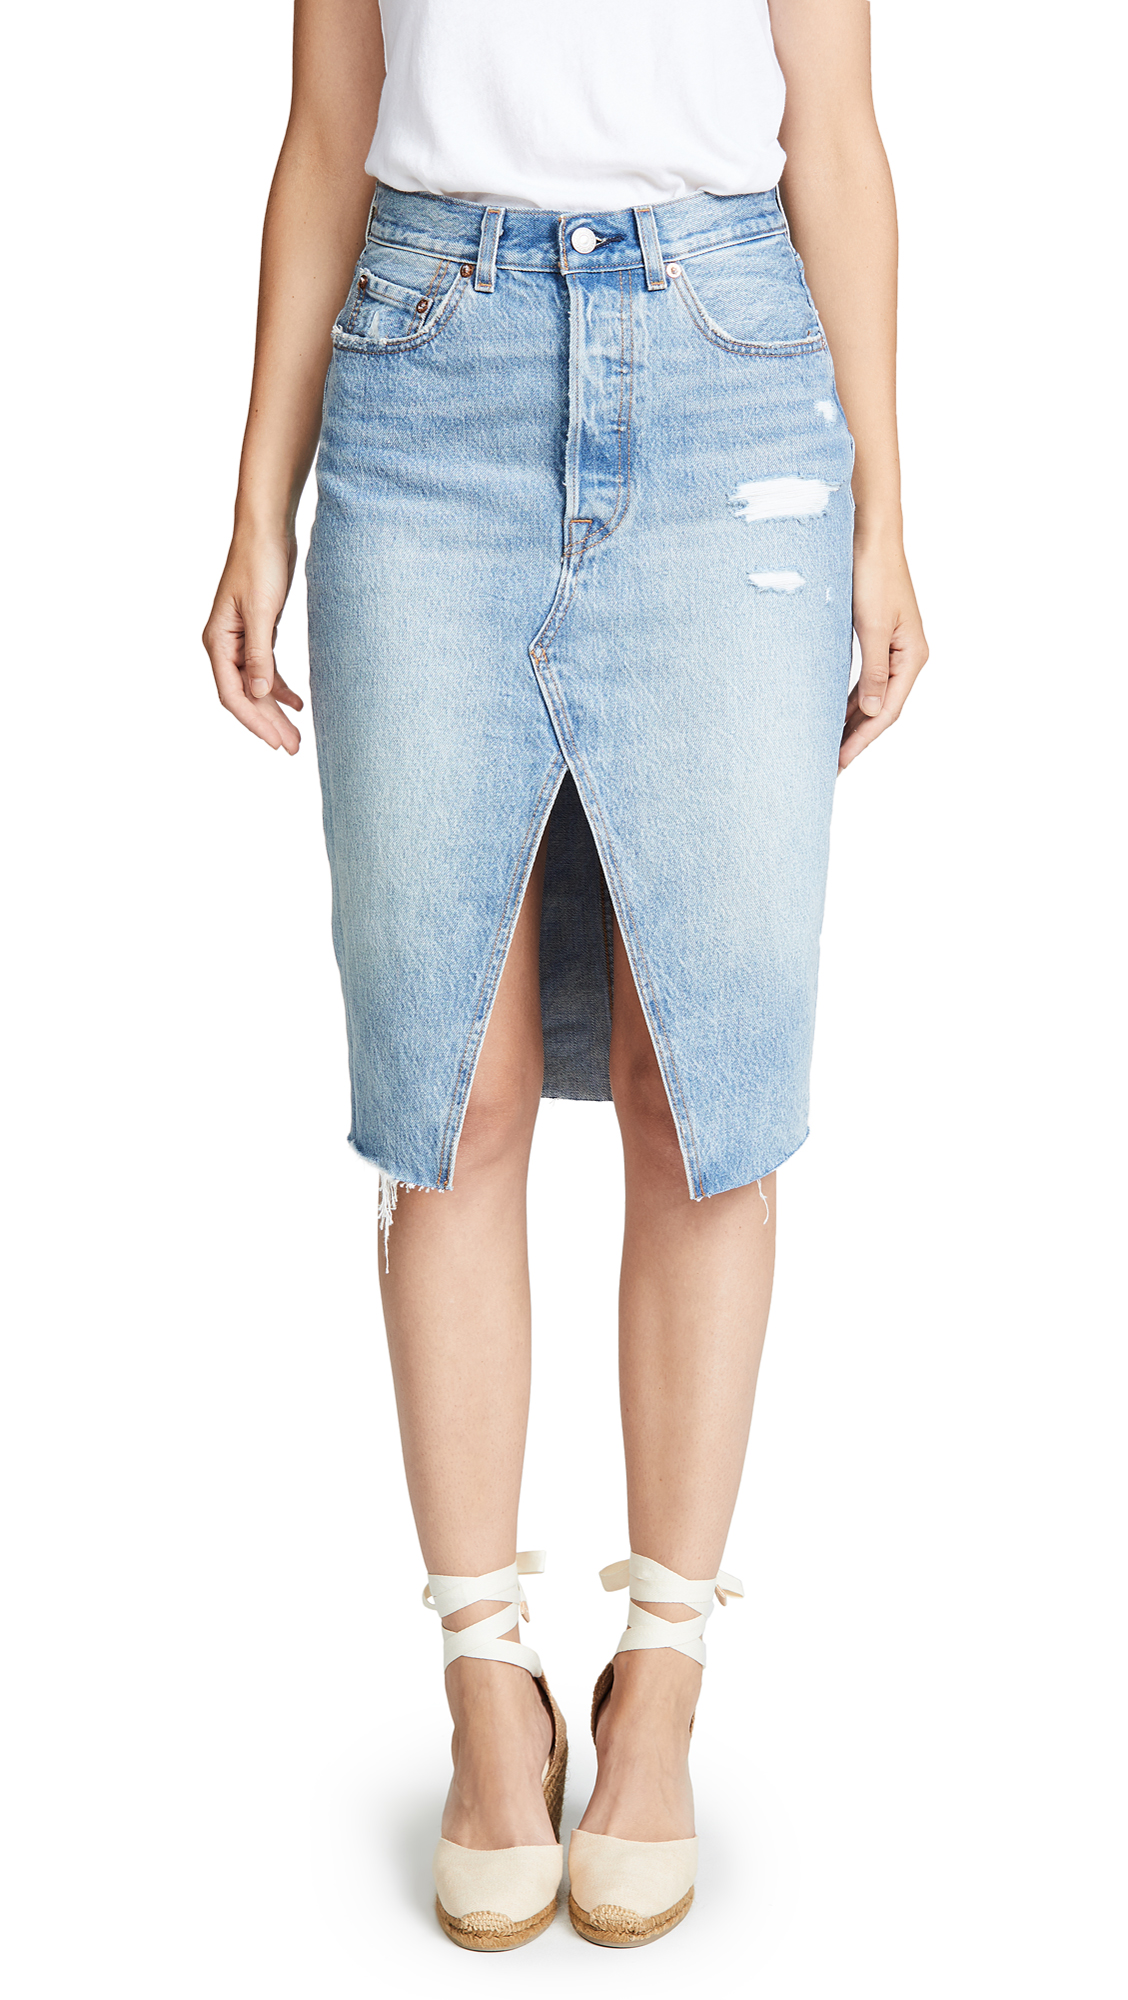 Levi's Deconstructed Long Skirt In Original Sinner